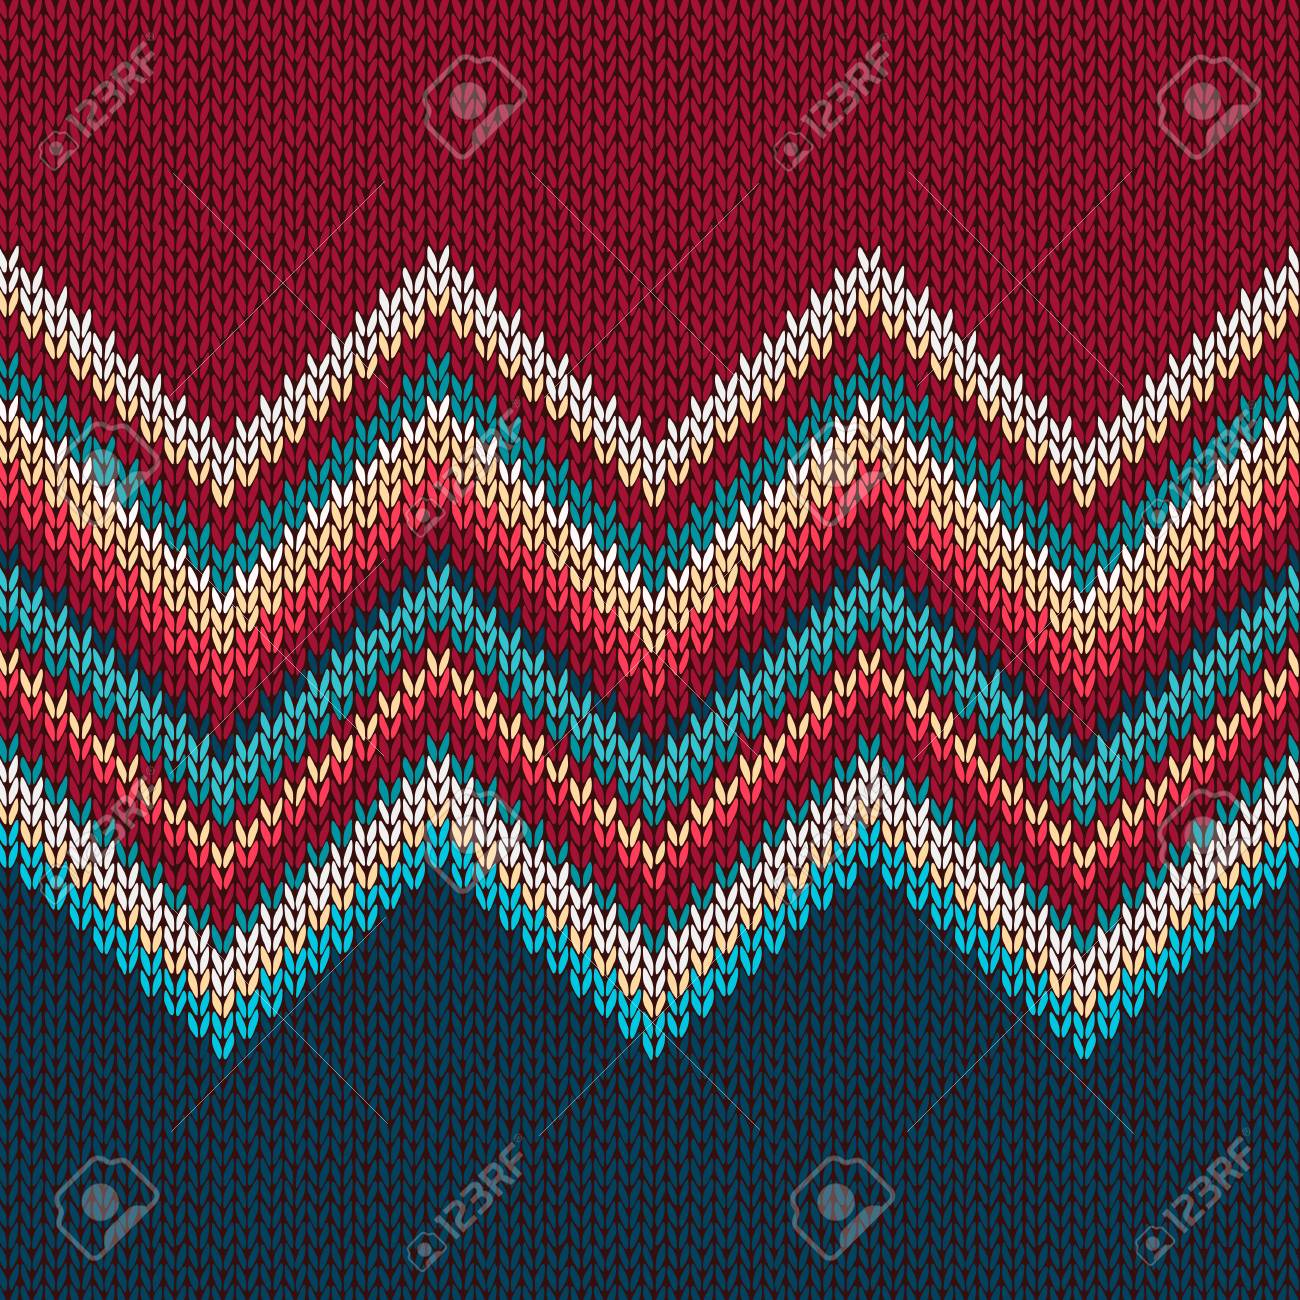 Seamless Knitting Pattern With Wave Ornament In Red Blue White ...